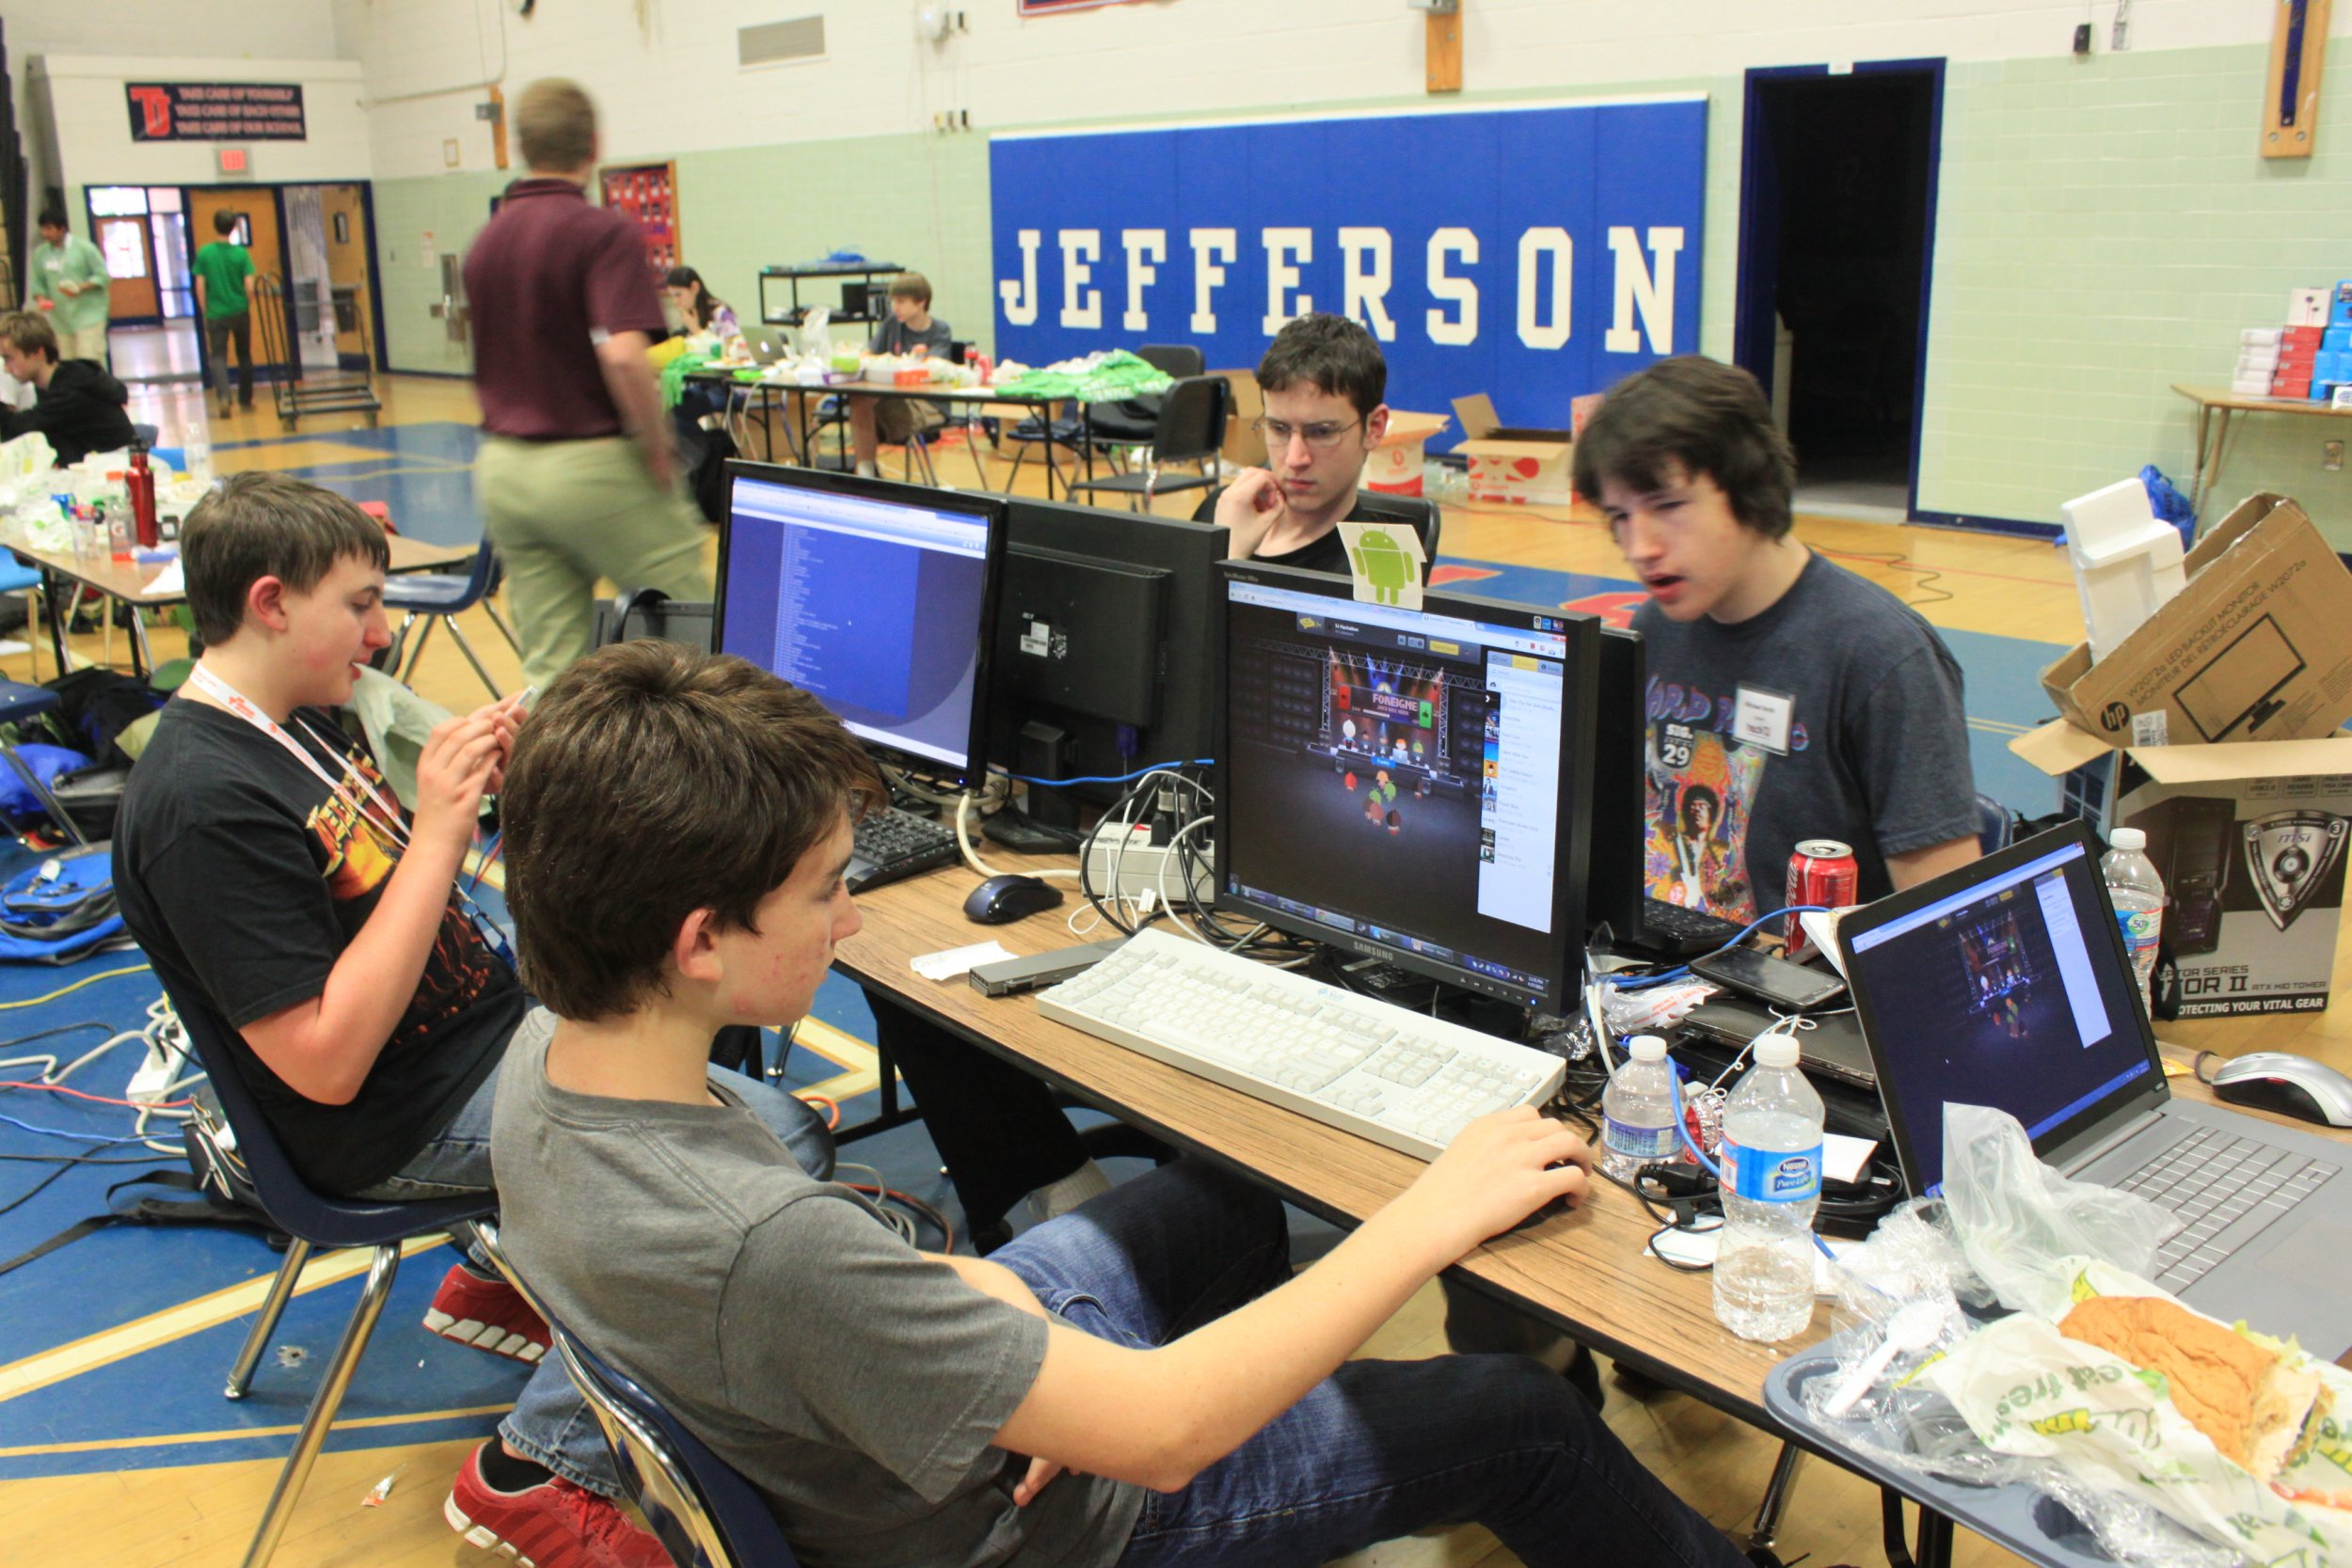 Thomas Jefferson School for Science and Technology a ticket to Ivy League?